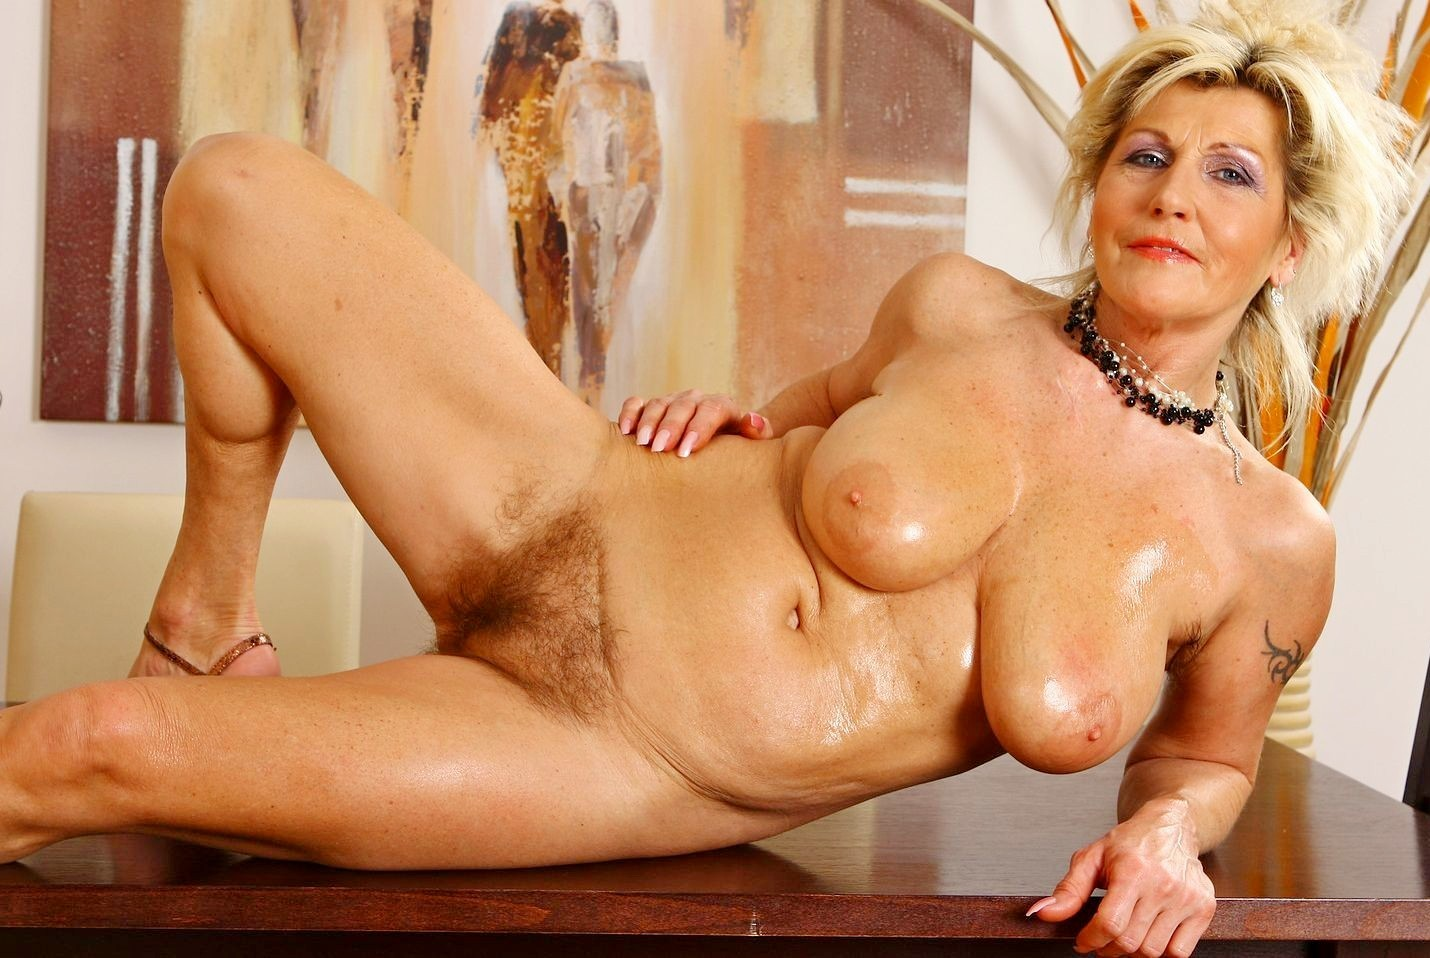 herzog-australian-hot-lady-sex